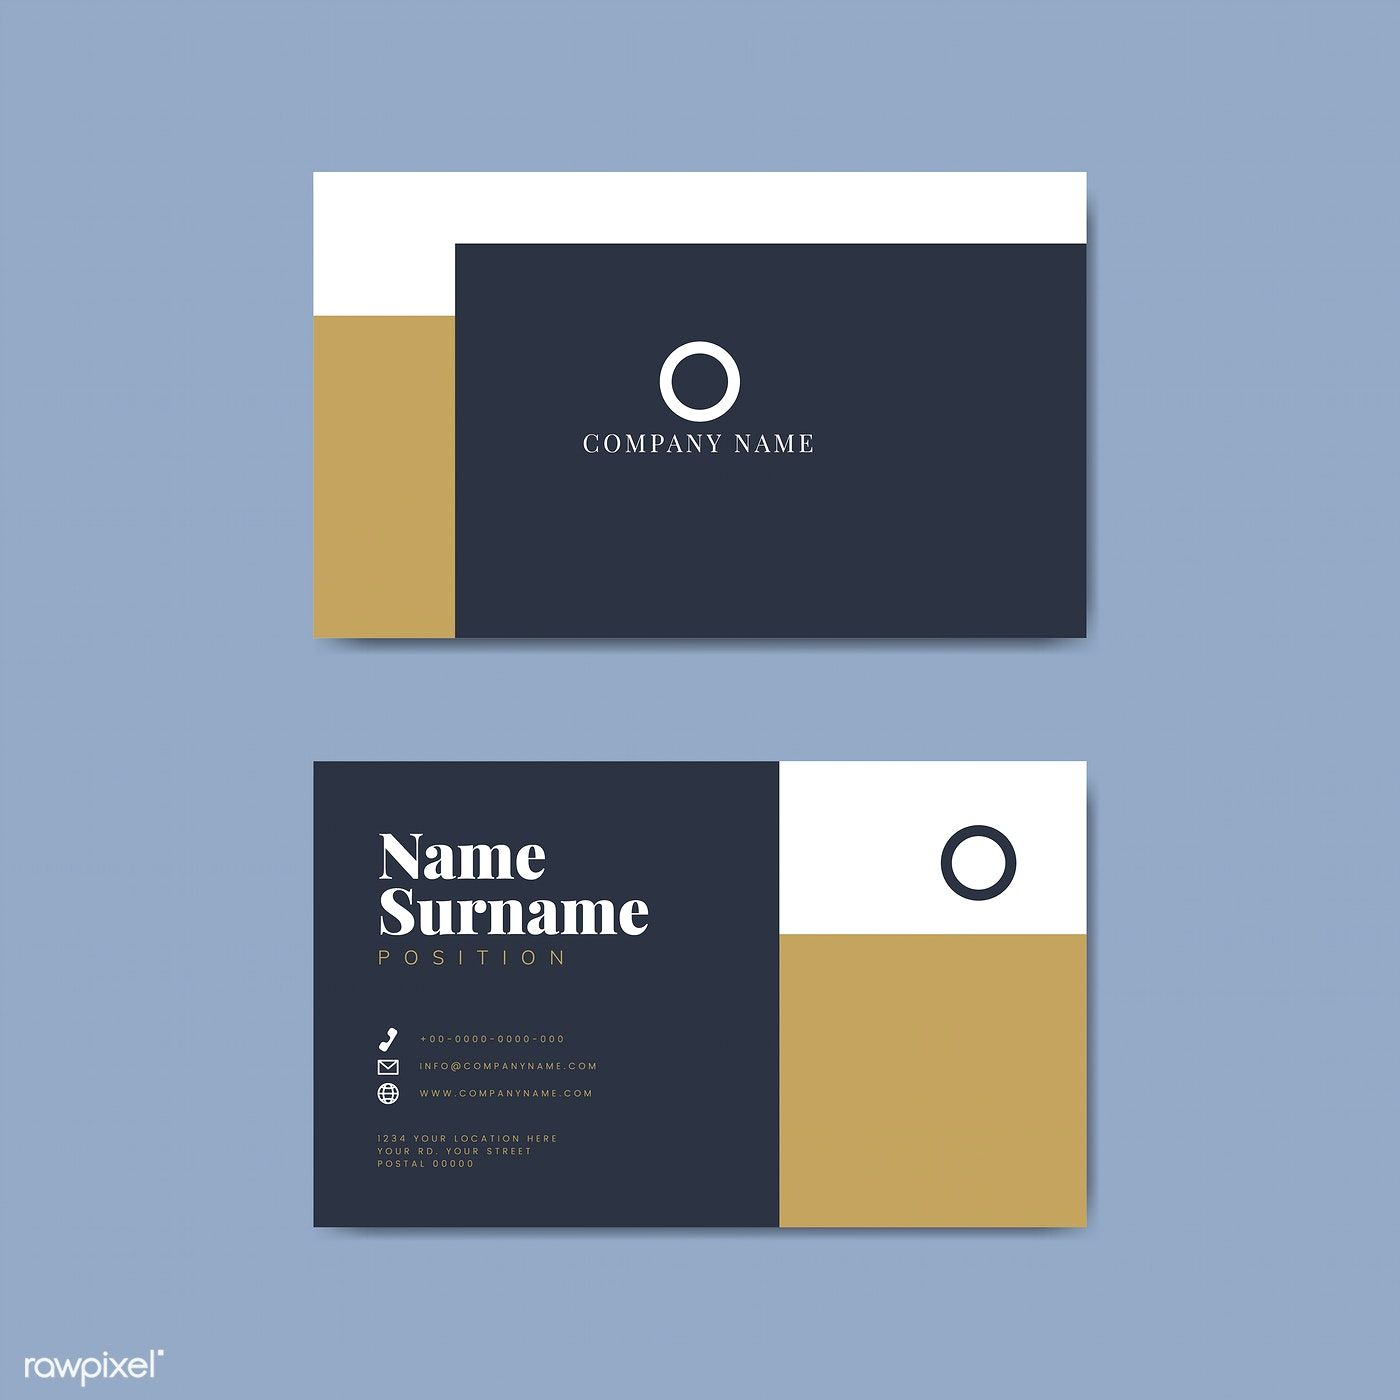 Monotone Business Card Template Mockup Vector Free Image By